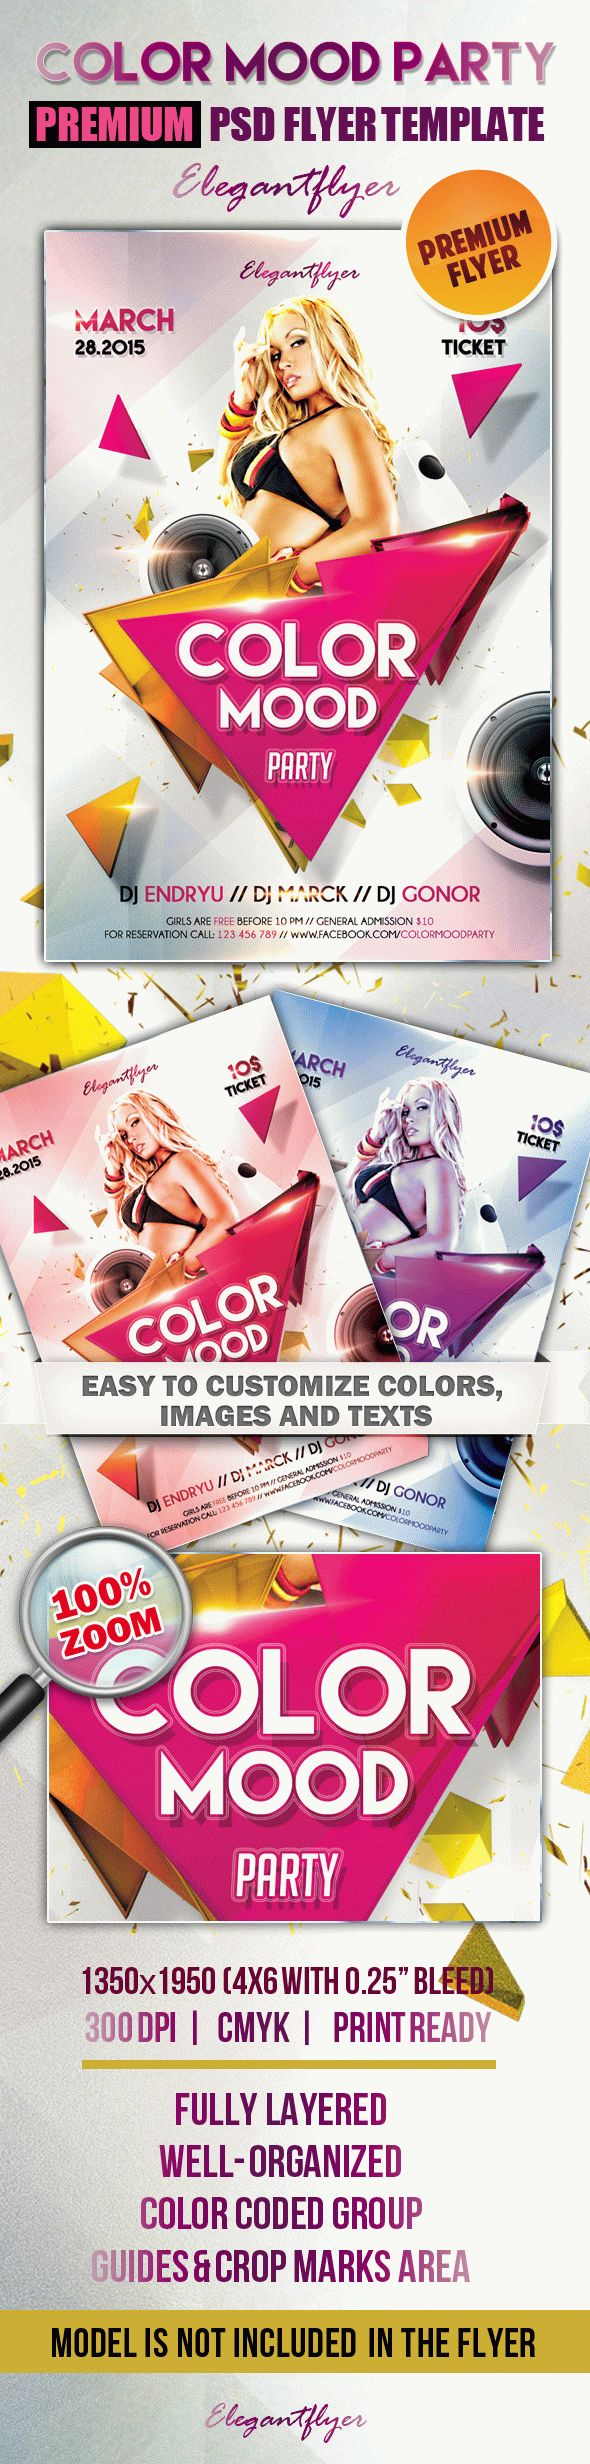 Color Mood party – Premium Club flyer PSD Template